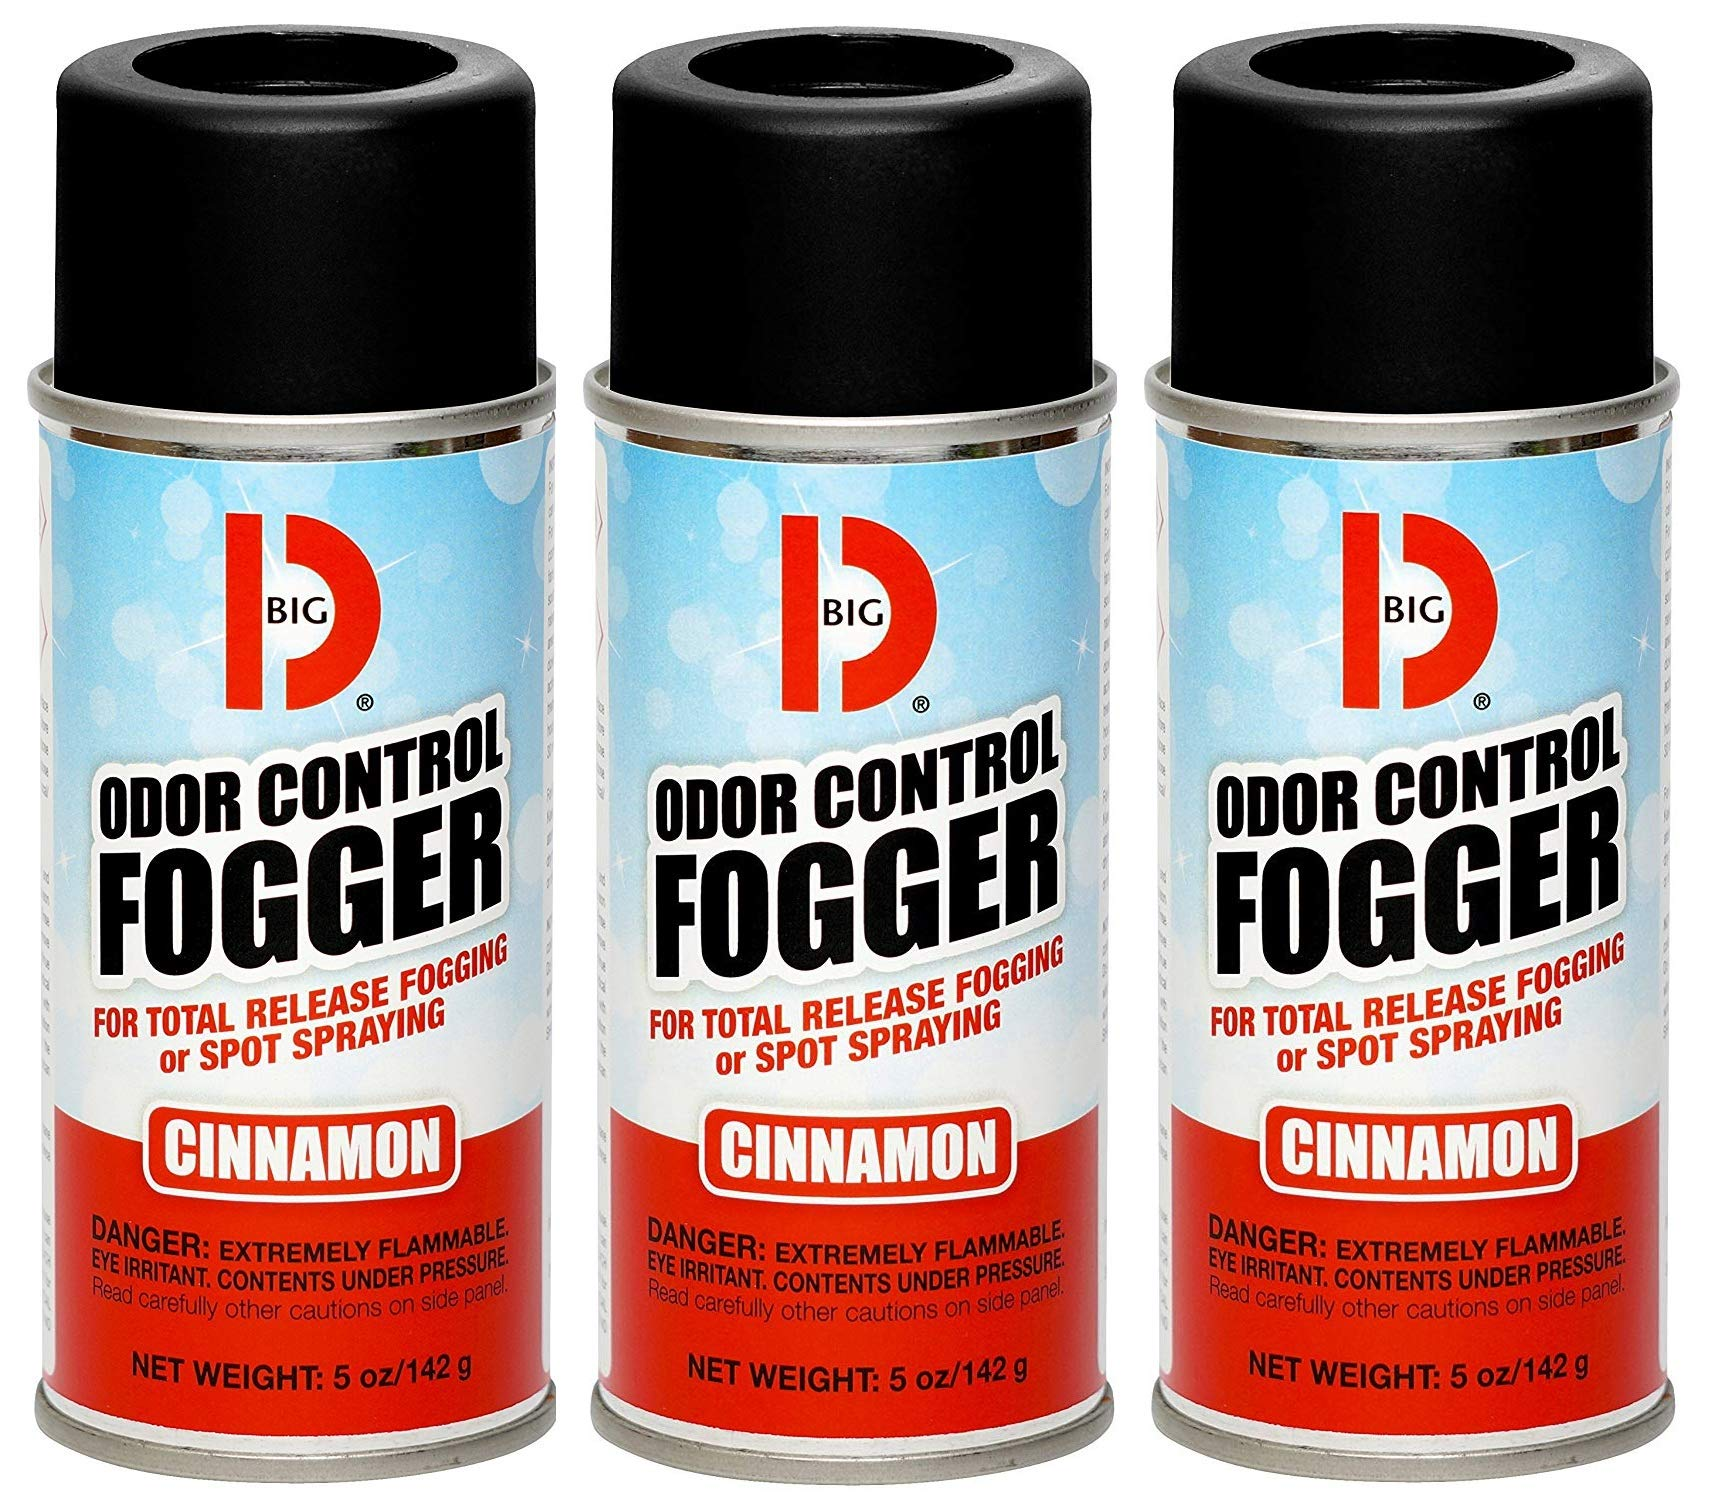 Big D 342 Odor Control Fogger, Cinnamon Fragrance, 5 oz (Pack of 12) - Kills Odors from fire, Flood, Decomposition, Skunk, Cigarettes, Musty Smells - Ideal for use in Cars (Вundlе оf Fіvе) by Big D (Image #1)